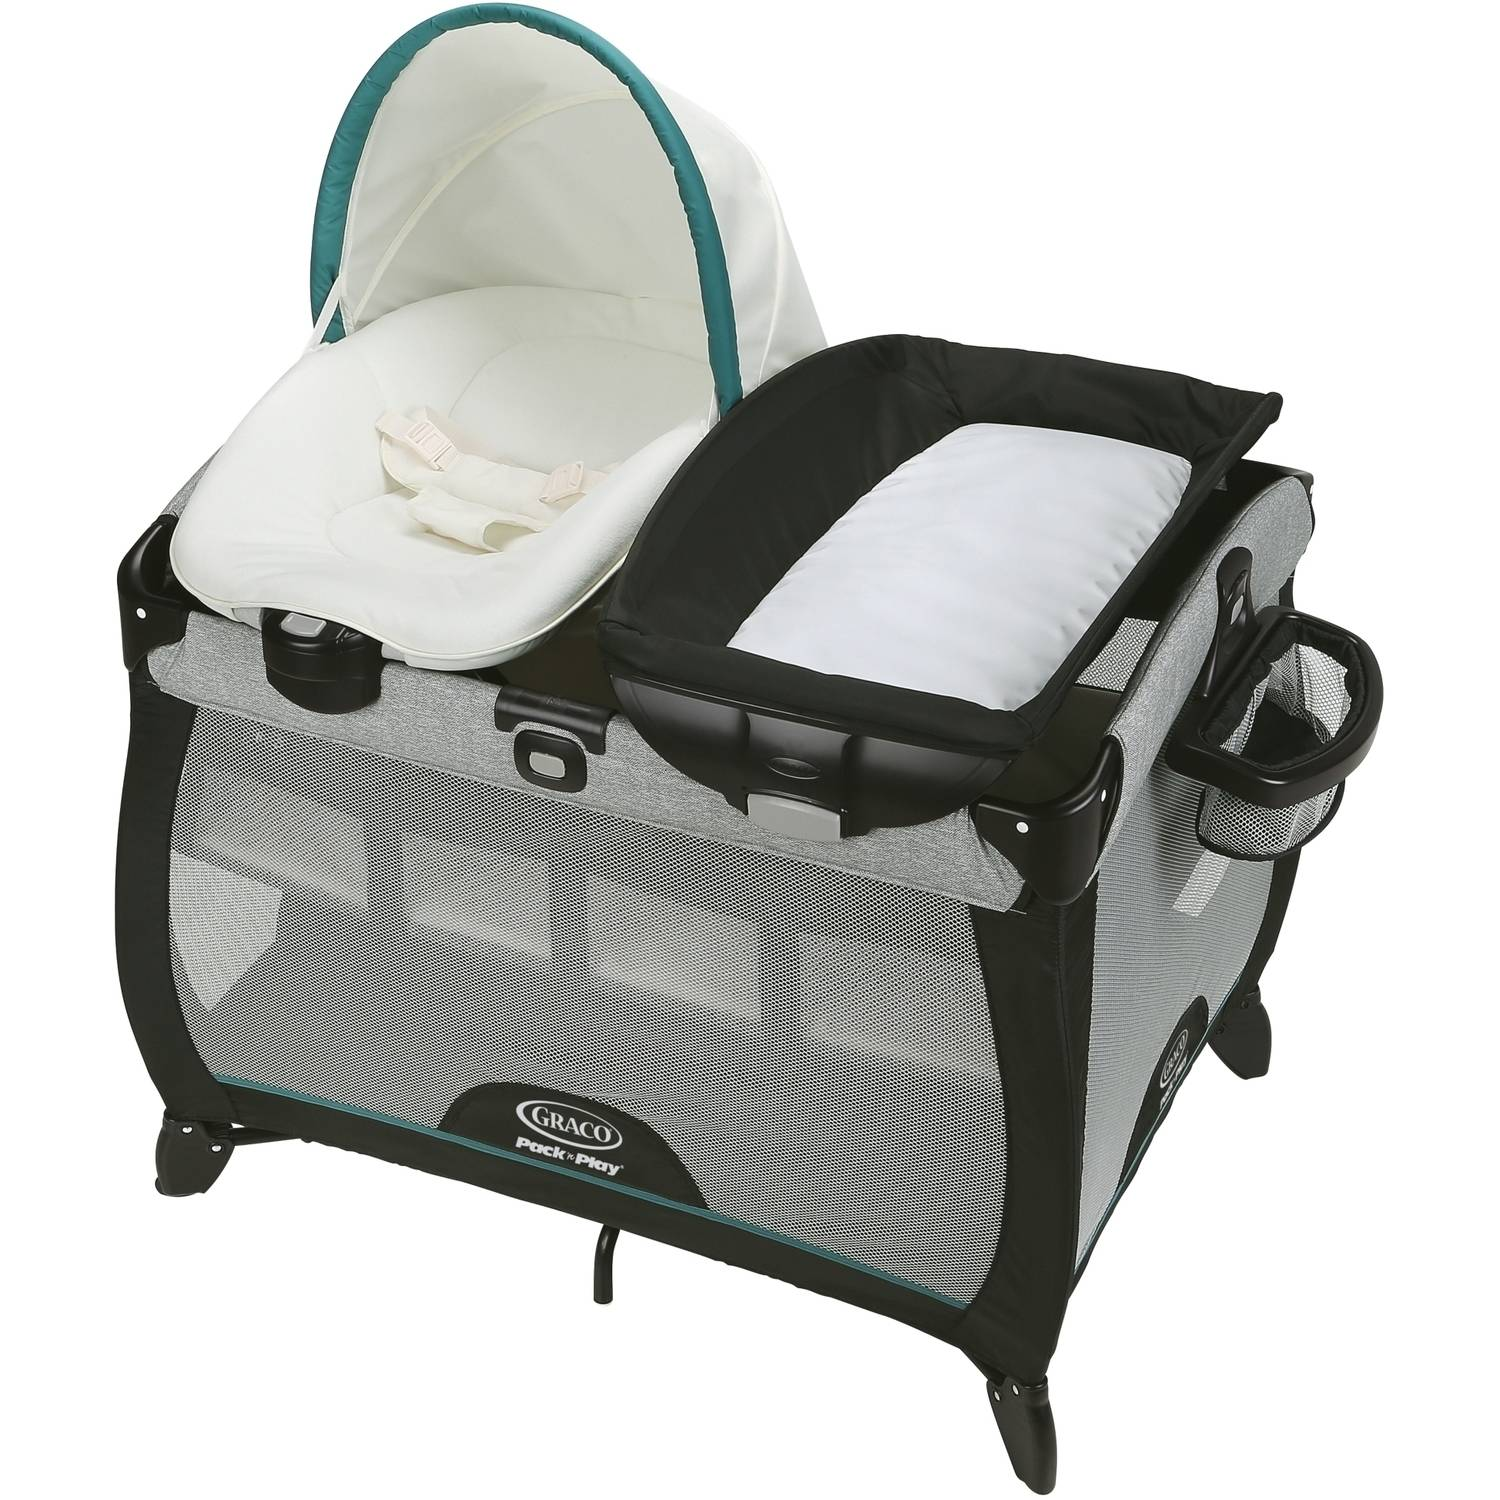 Graco Pack 'n Play Quick Connect Portable Napper with Bassinet, Darcie